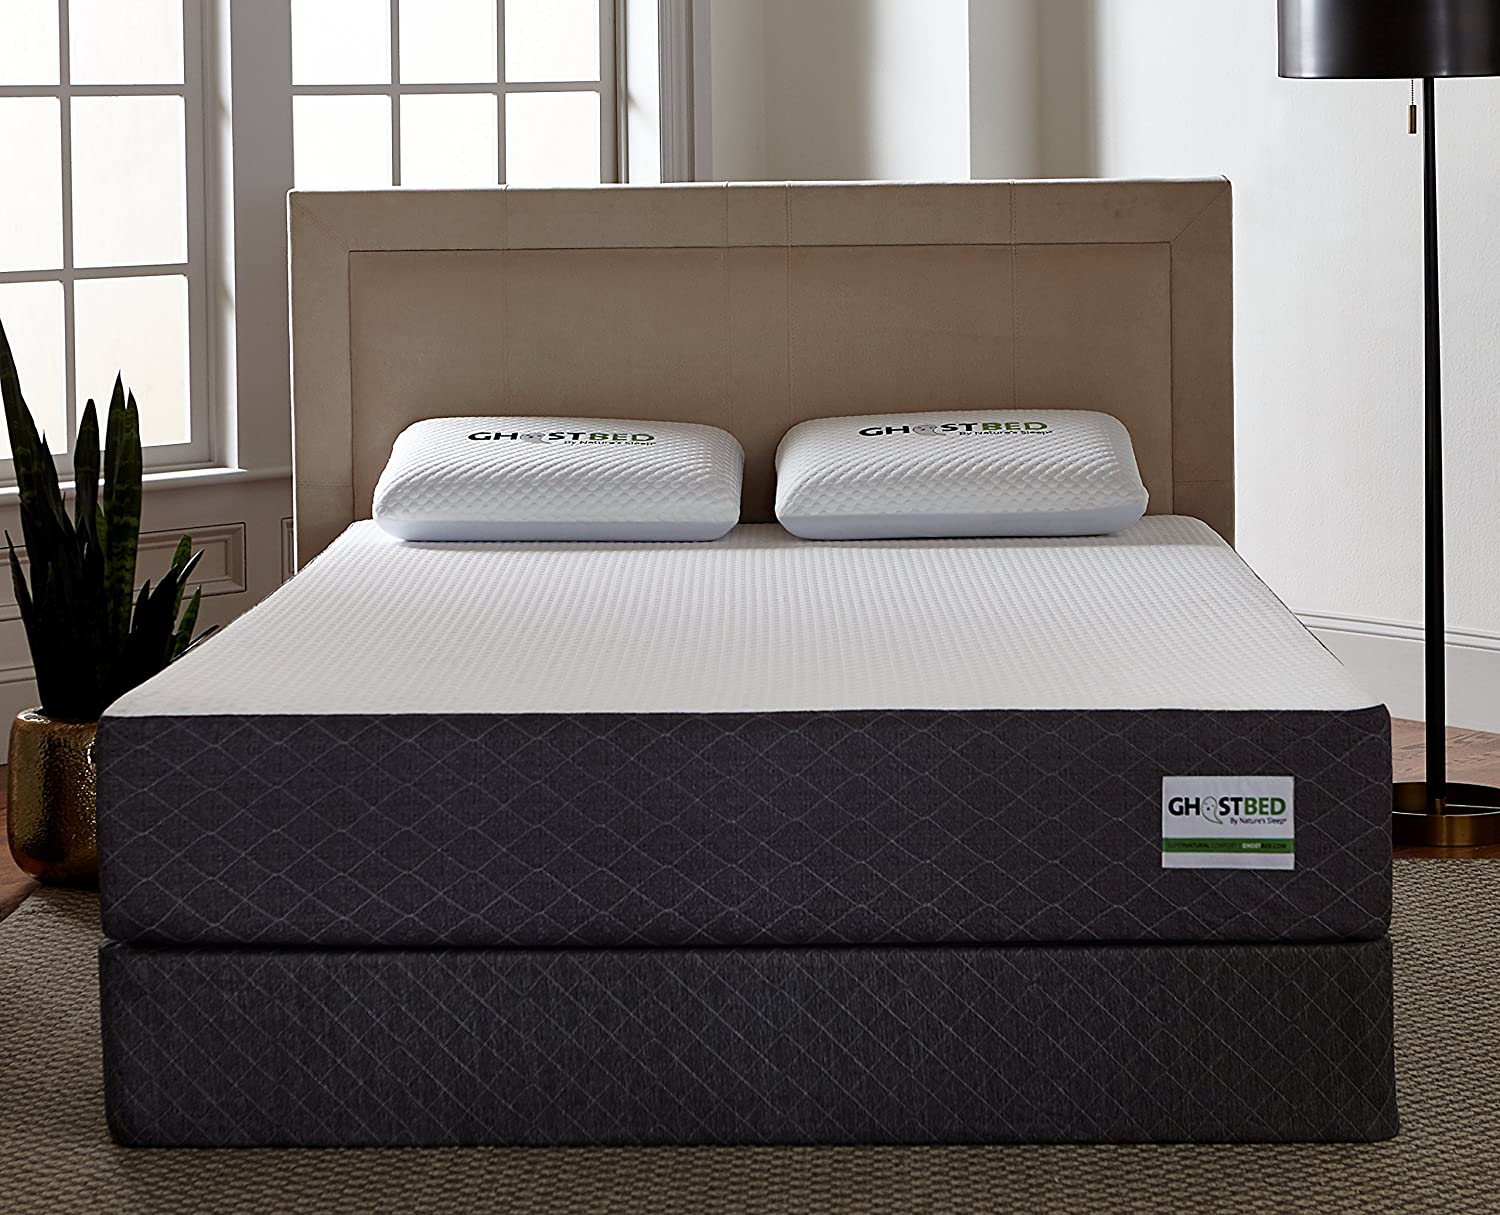 GhostBed Mattress-Twin 11 Inch-Cooling Gel Memory Foam-Mattress in a Box-Most Advanced Adaptive Gel Memory Foam Coolest Mattress in America-Made in the USA Industry Leading 20 Year Warranty